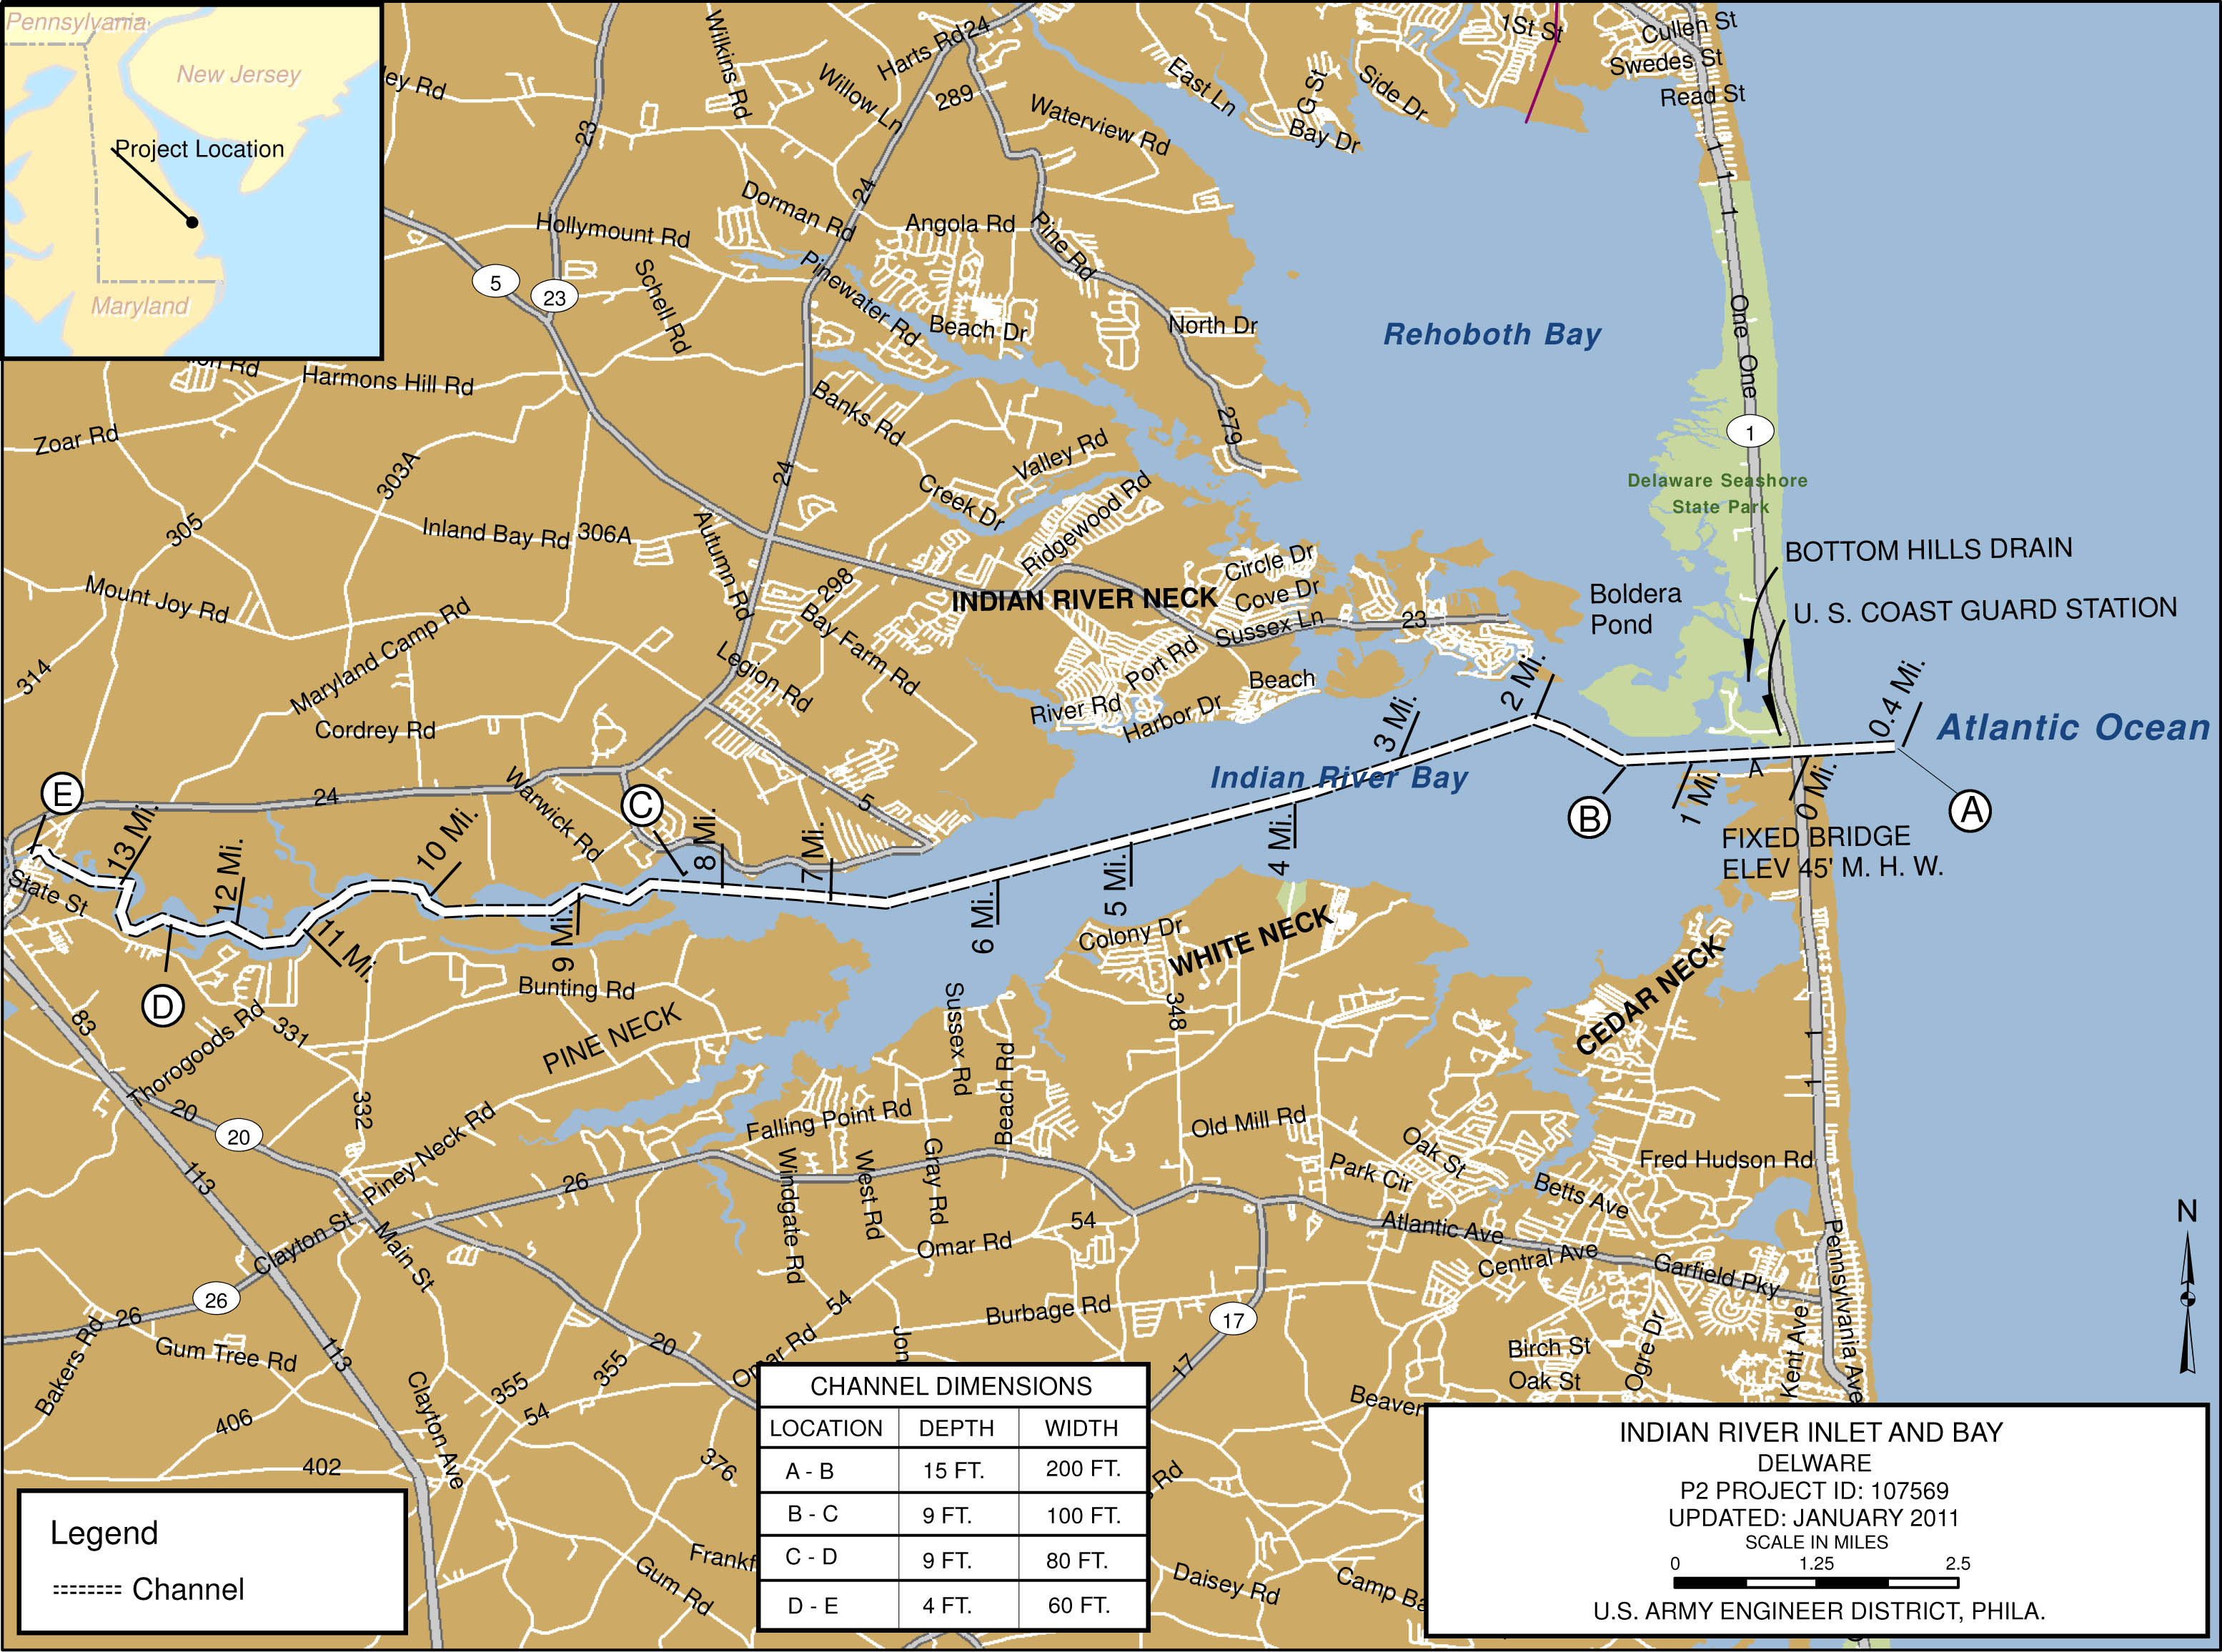 Indian River Inlet Bay Philadelphia District Marine Design Center Fact Sheet Article View